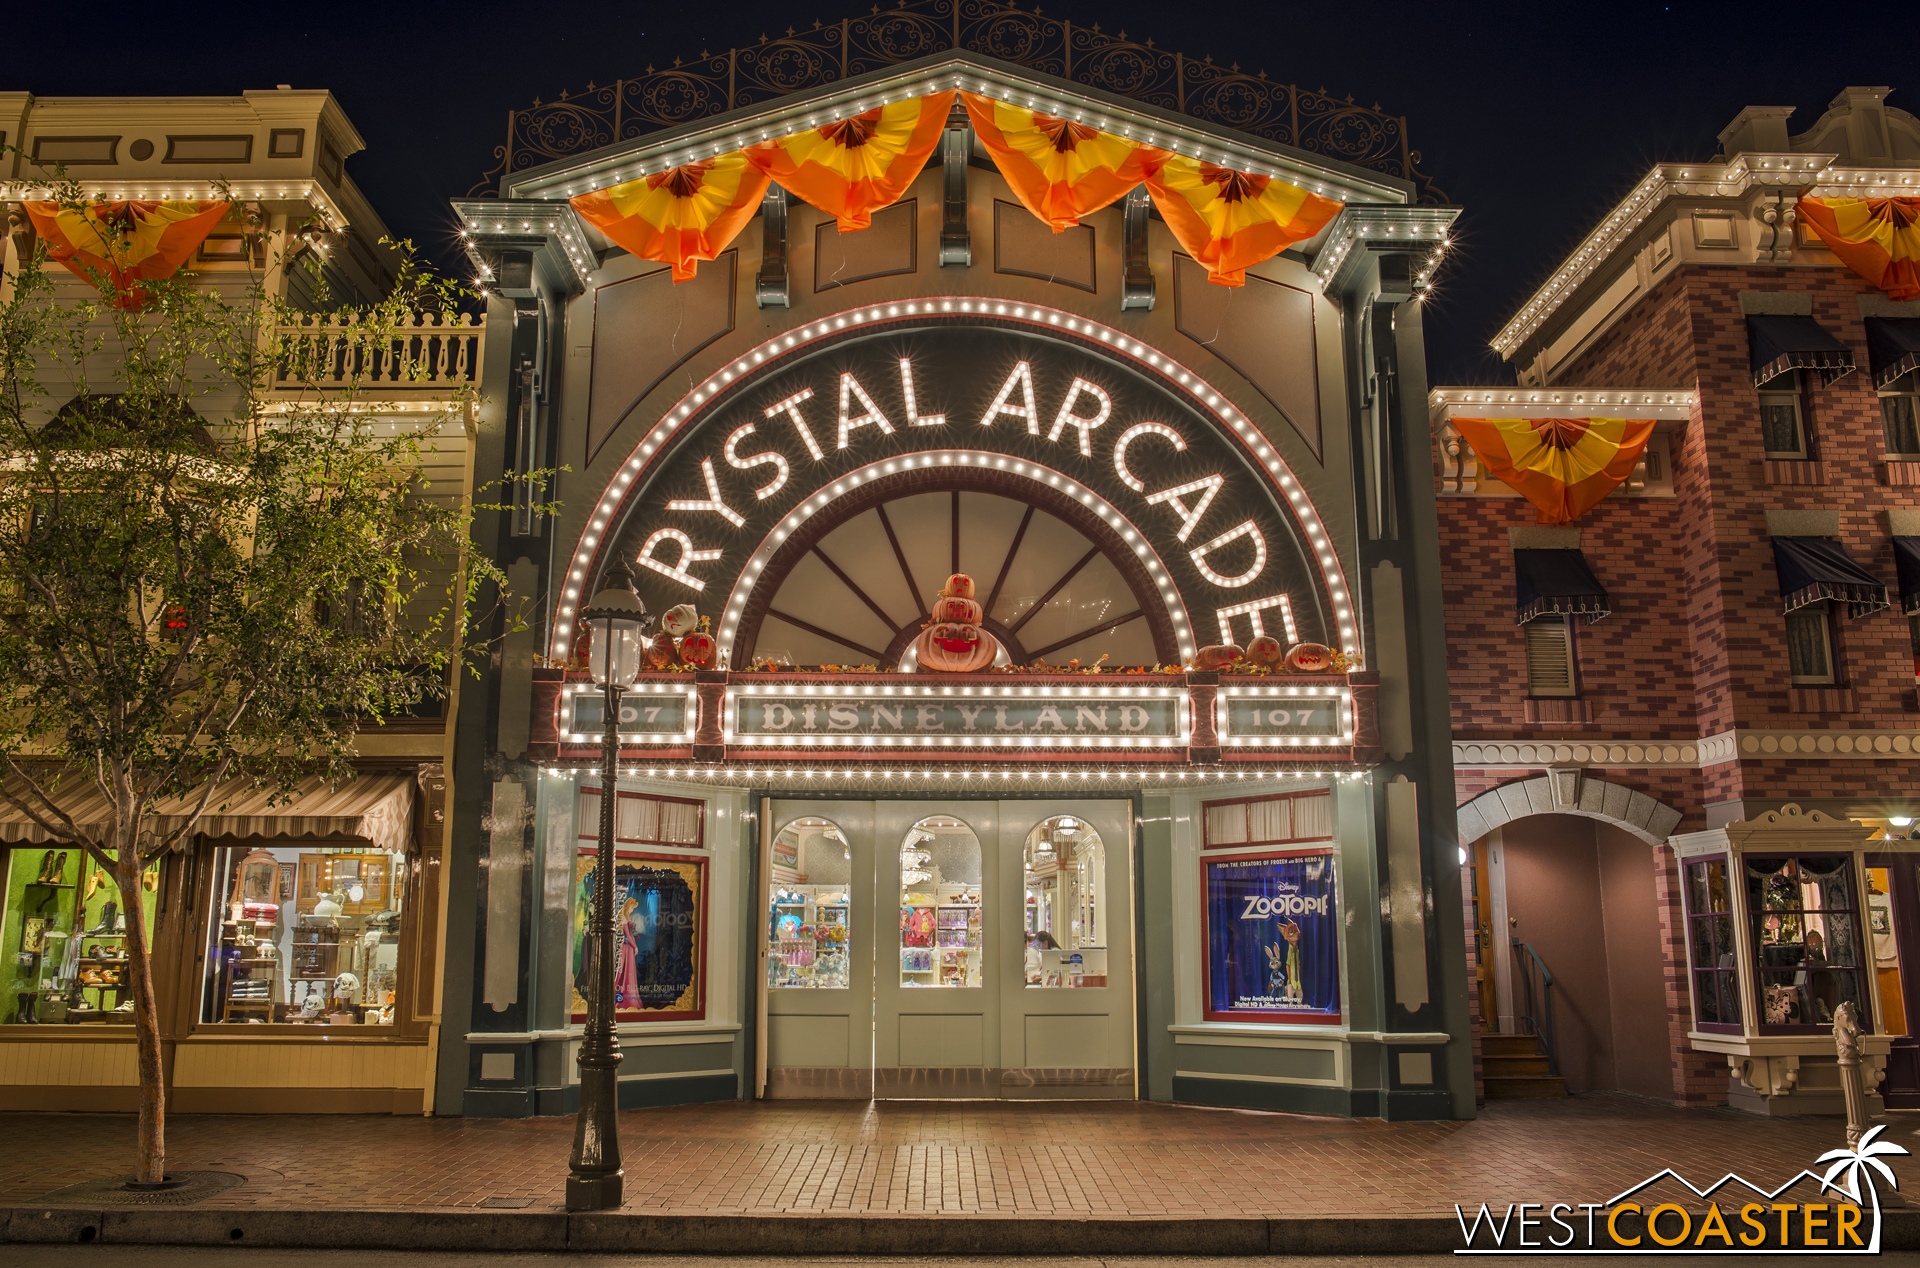 Moving on to Crystal Arcade.